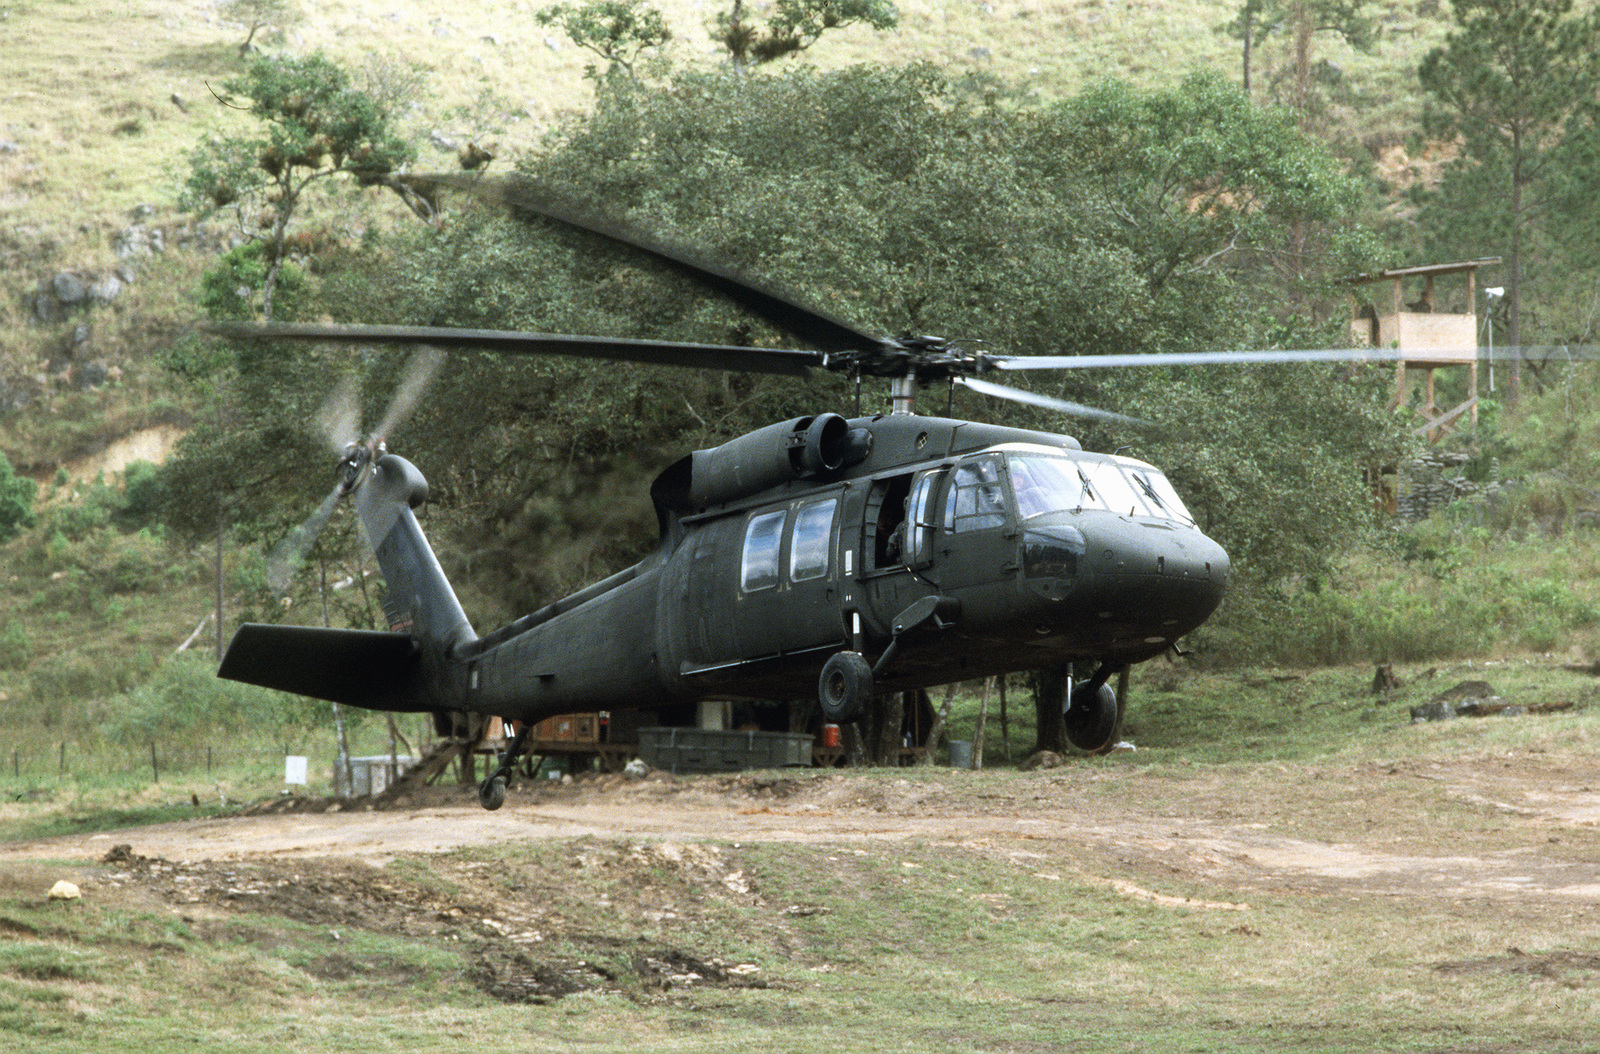 A UH-60 Black Hawk (Blackhawk) helicopter takes off during